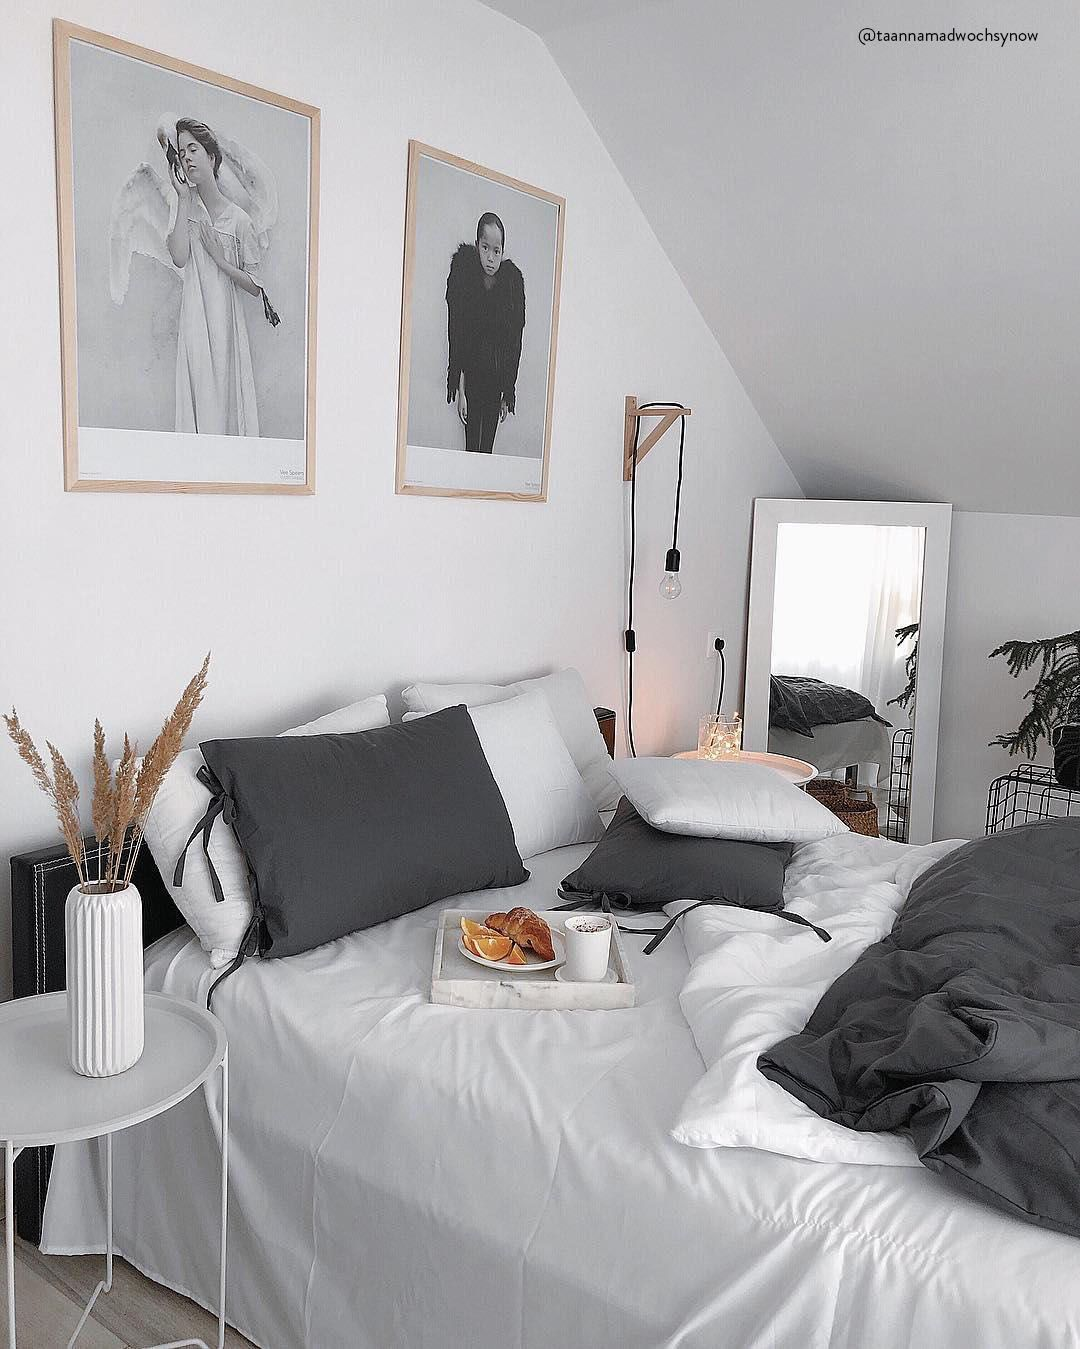 Kissen Bett Deko Marmor Tablett Ciaran In 2019 Ab Ins Bett Bedroom Room